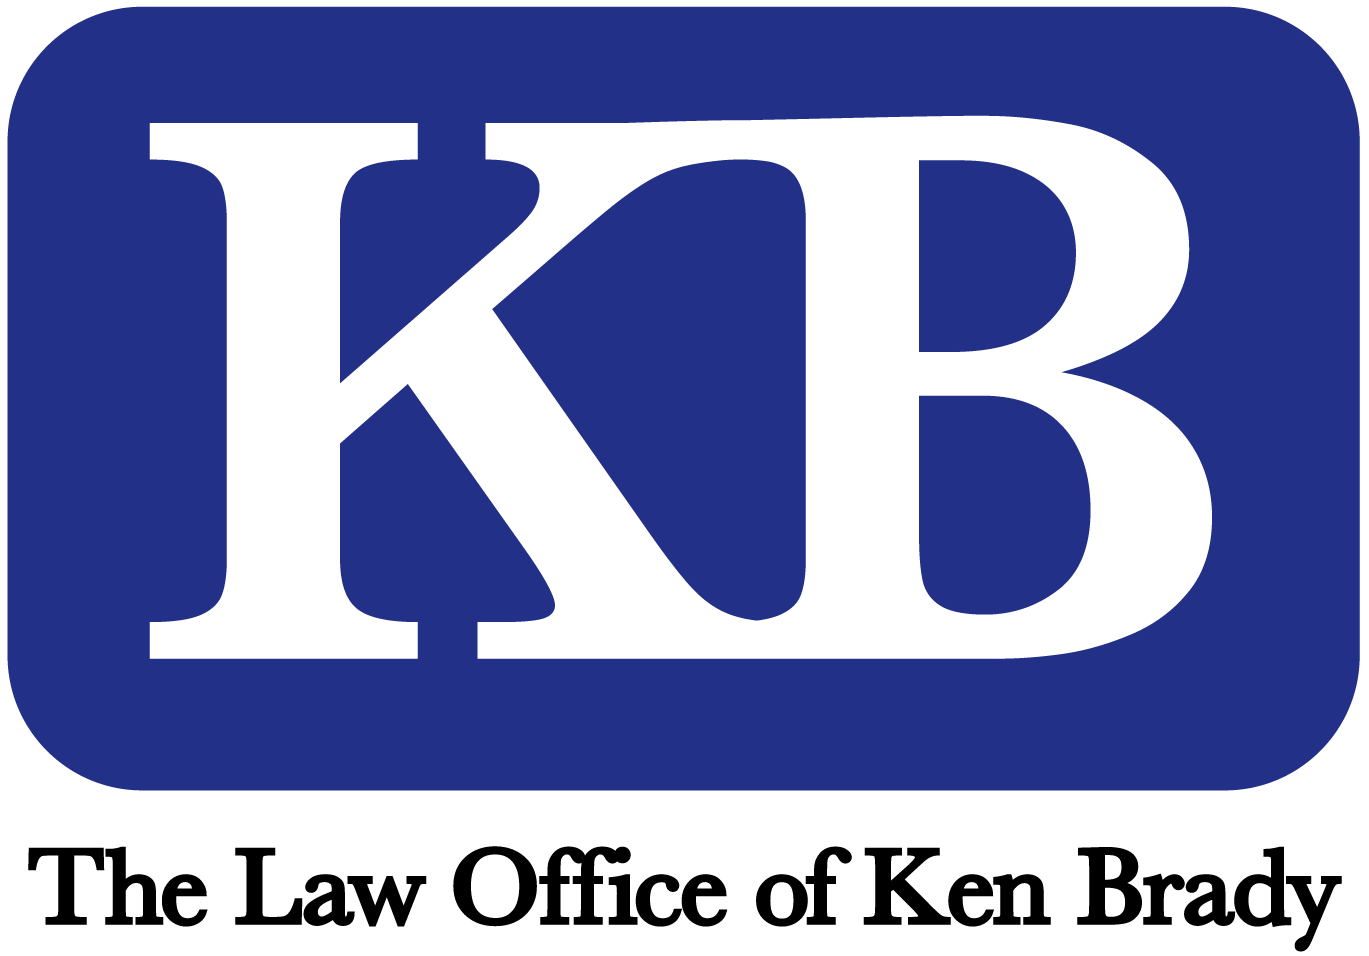 The Law Office of Ken Brady, PLLC